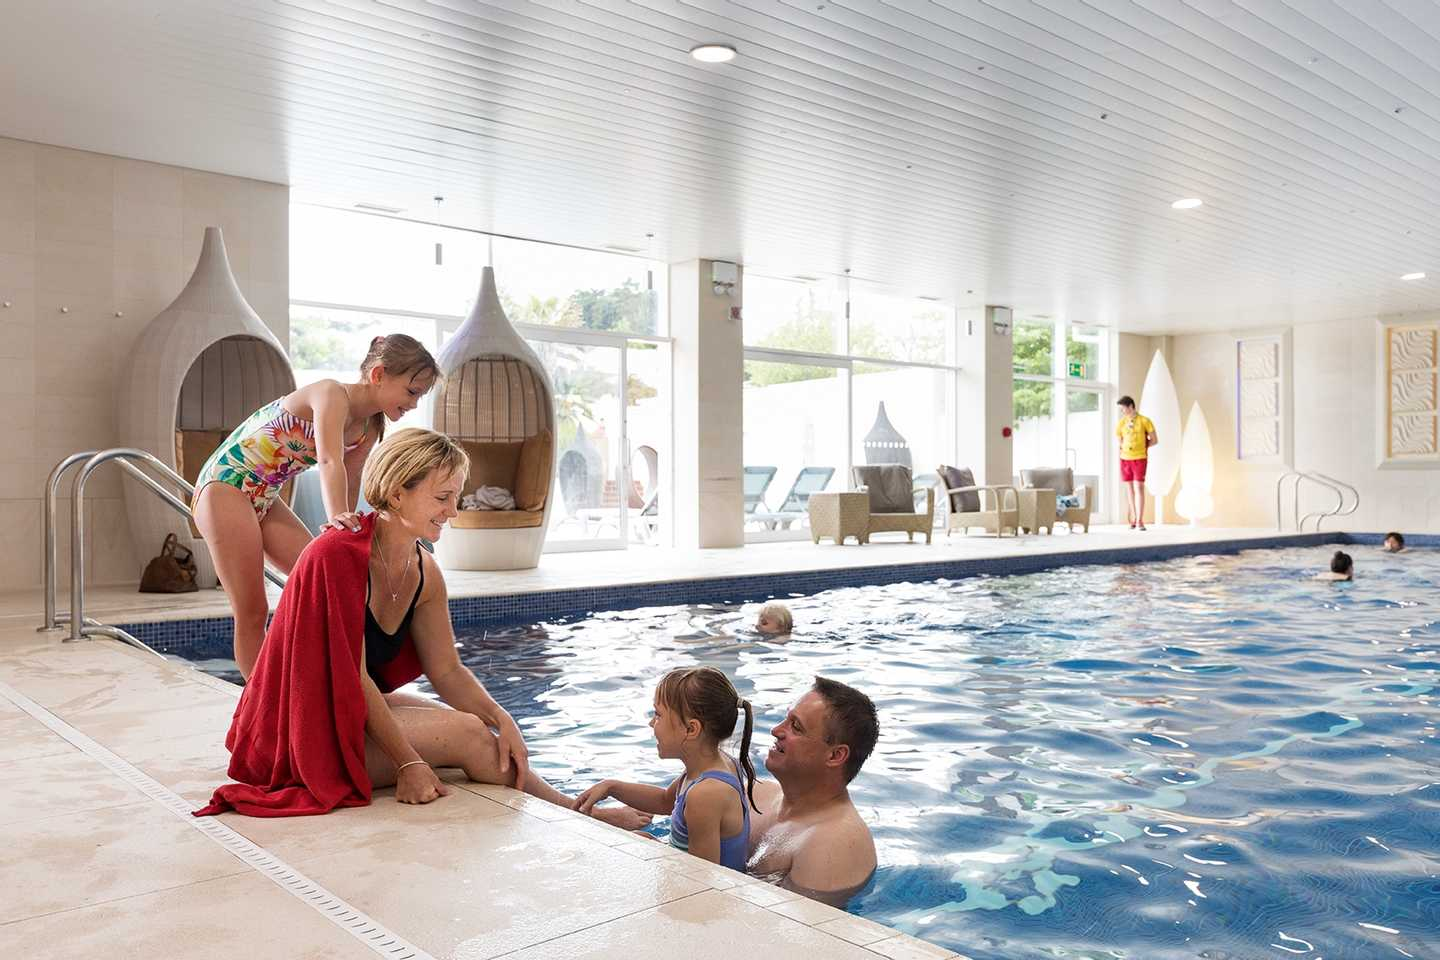 The owners' indoor pool